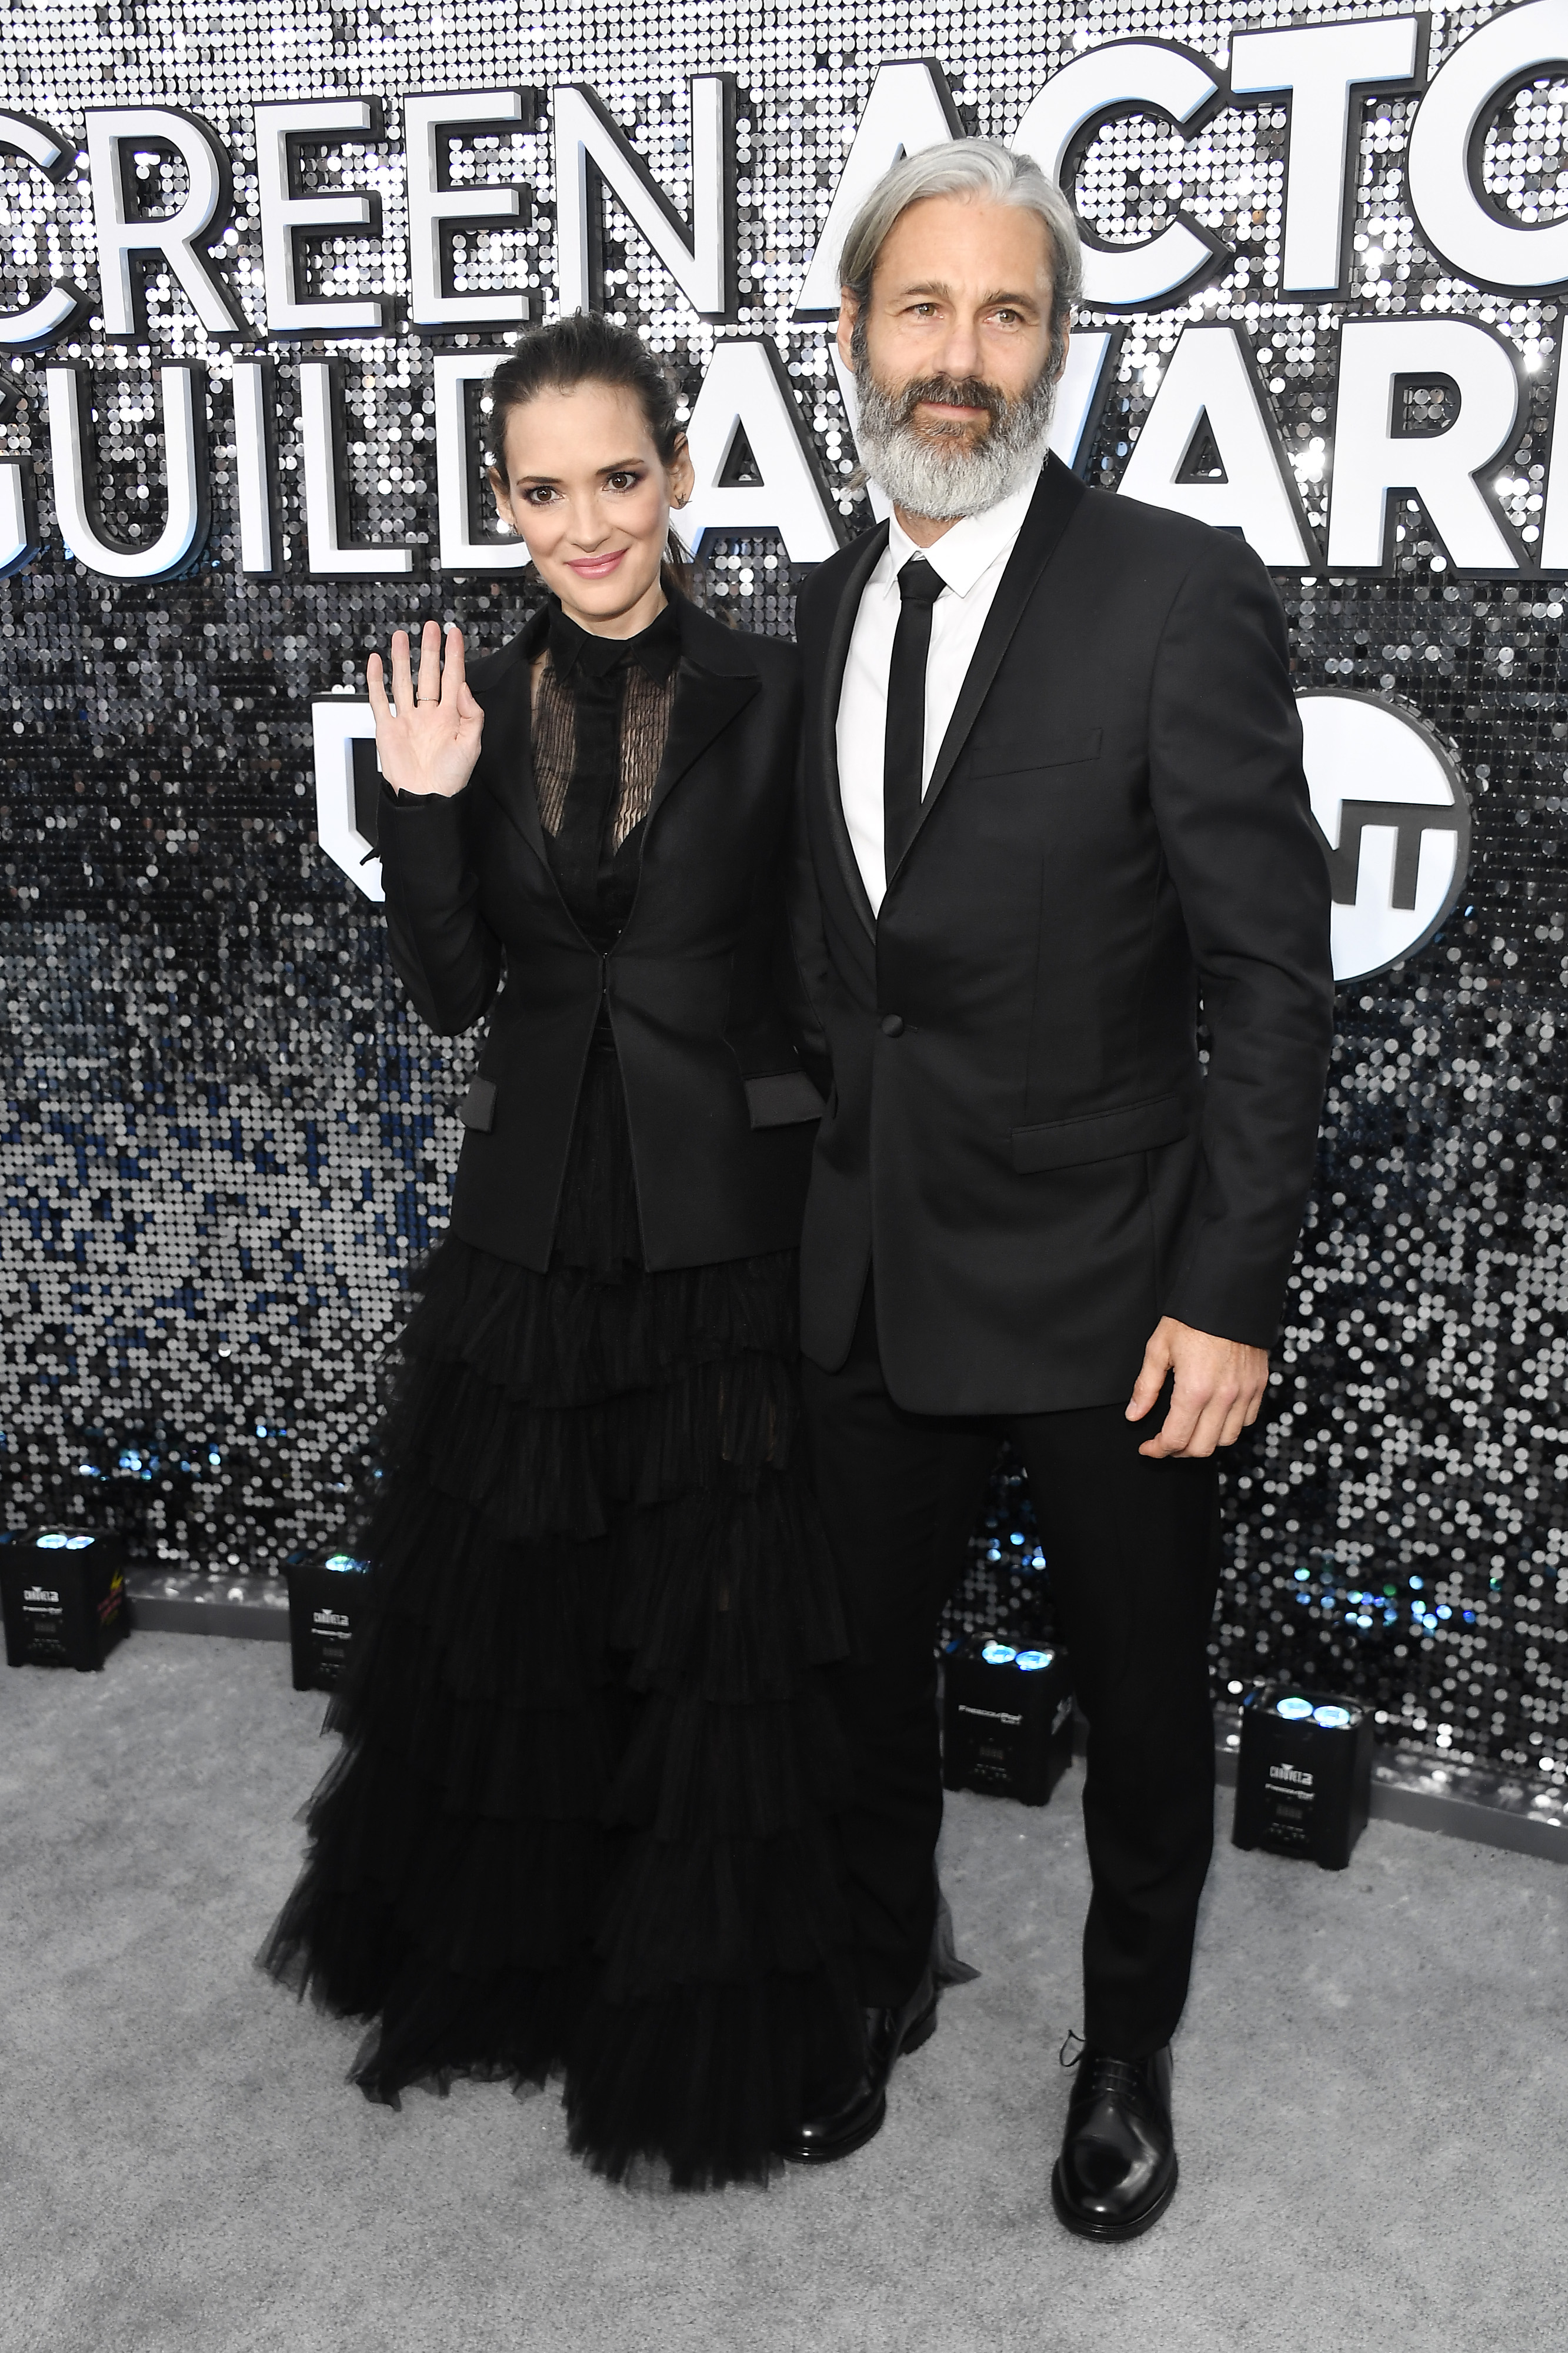 LOS ANGELES, CALIFORNIA - JANUARY 19: (L-R) Winona Ryder and Scott Mackinlay Hahn attend the 26th Annual Screen ActorsGuild Awards at The Shrine Auditorium on January 19, 2020 in Los Angeles, California. (Photo by Frazer Harrison/Getty Images)